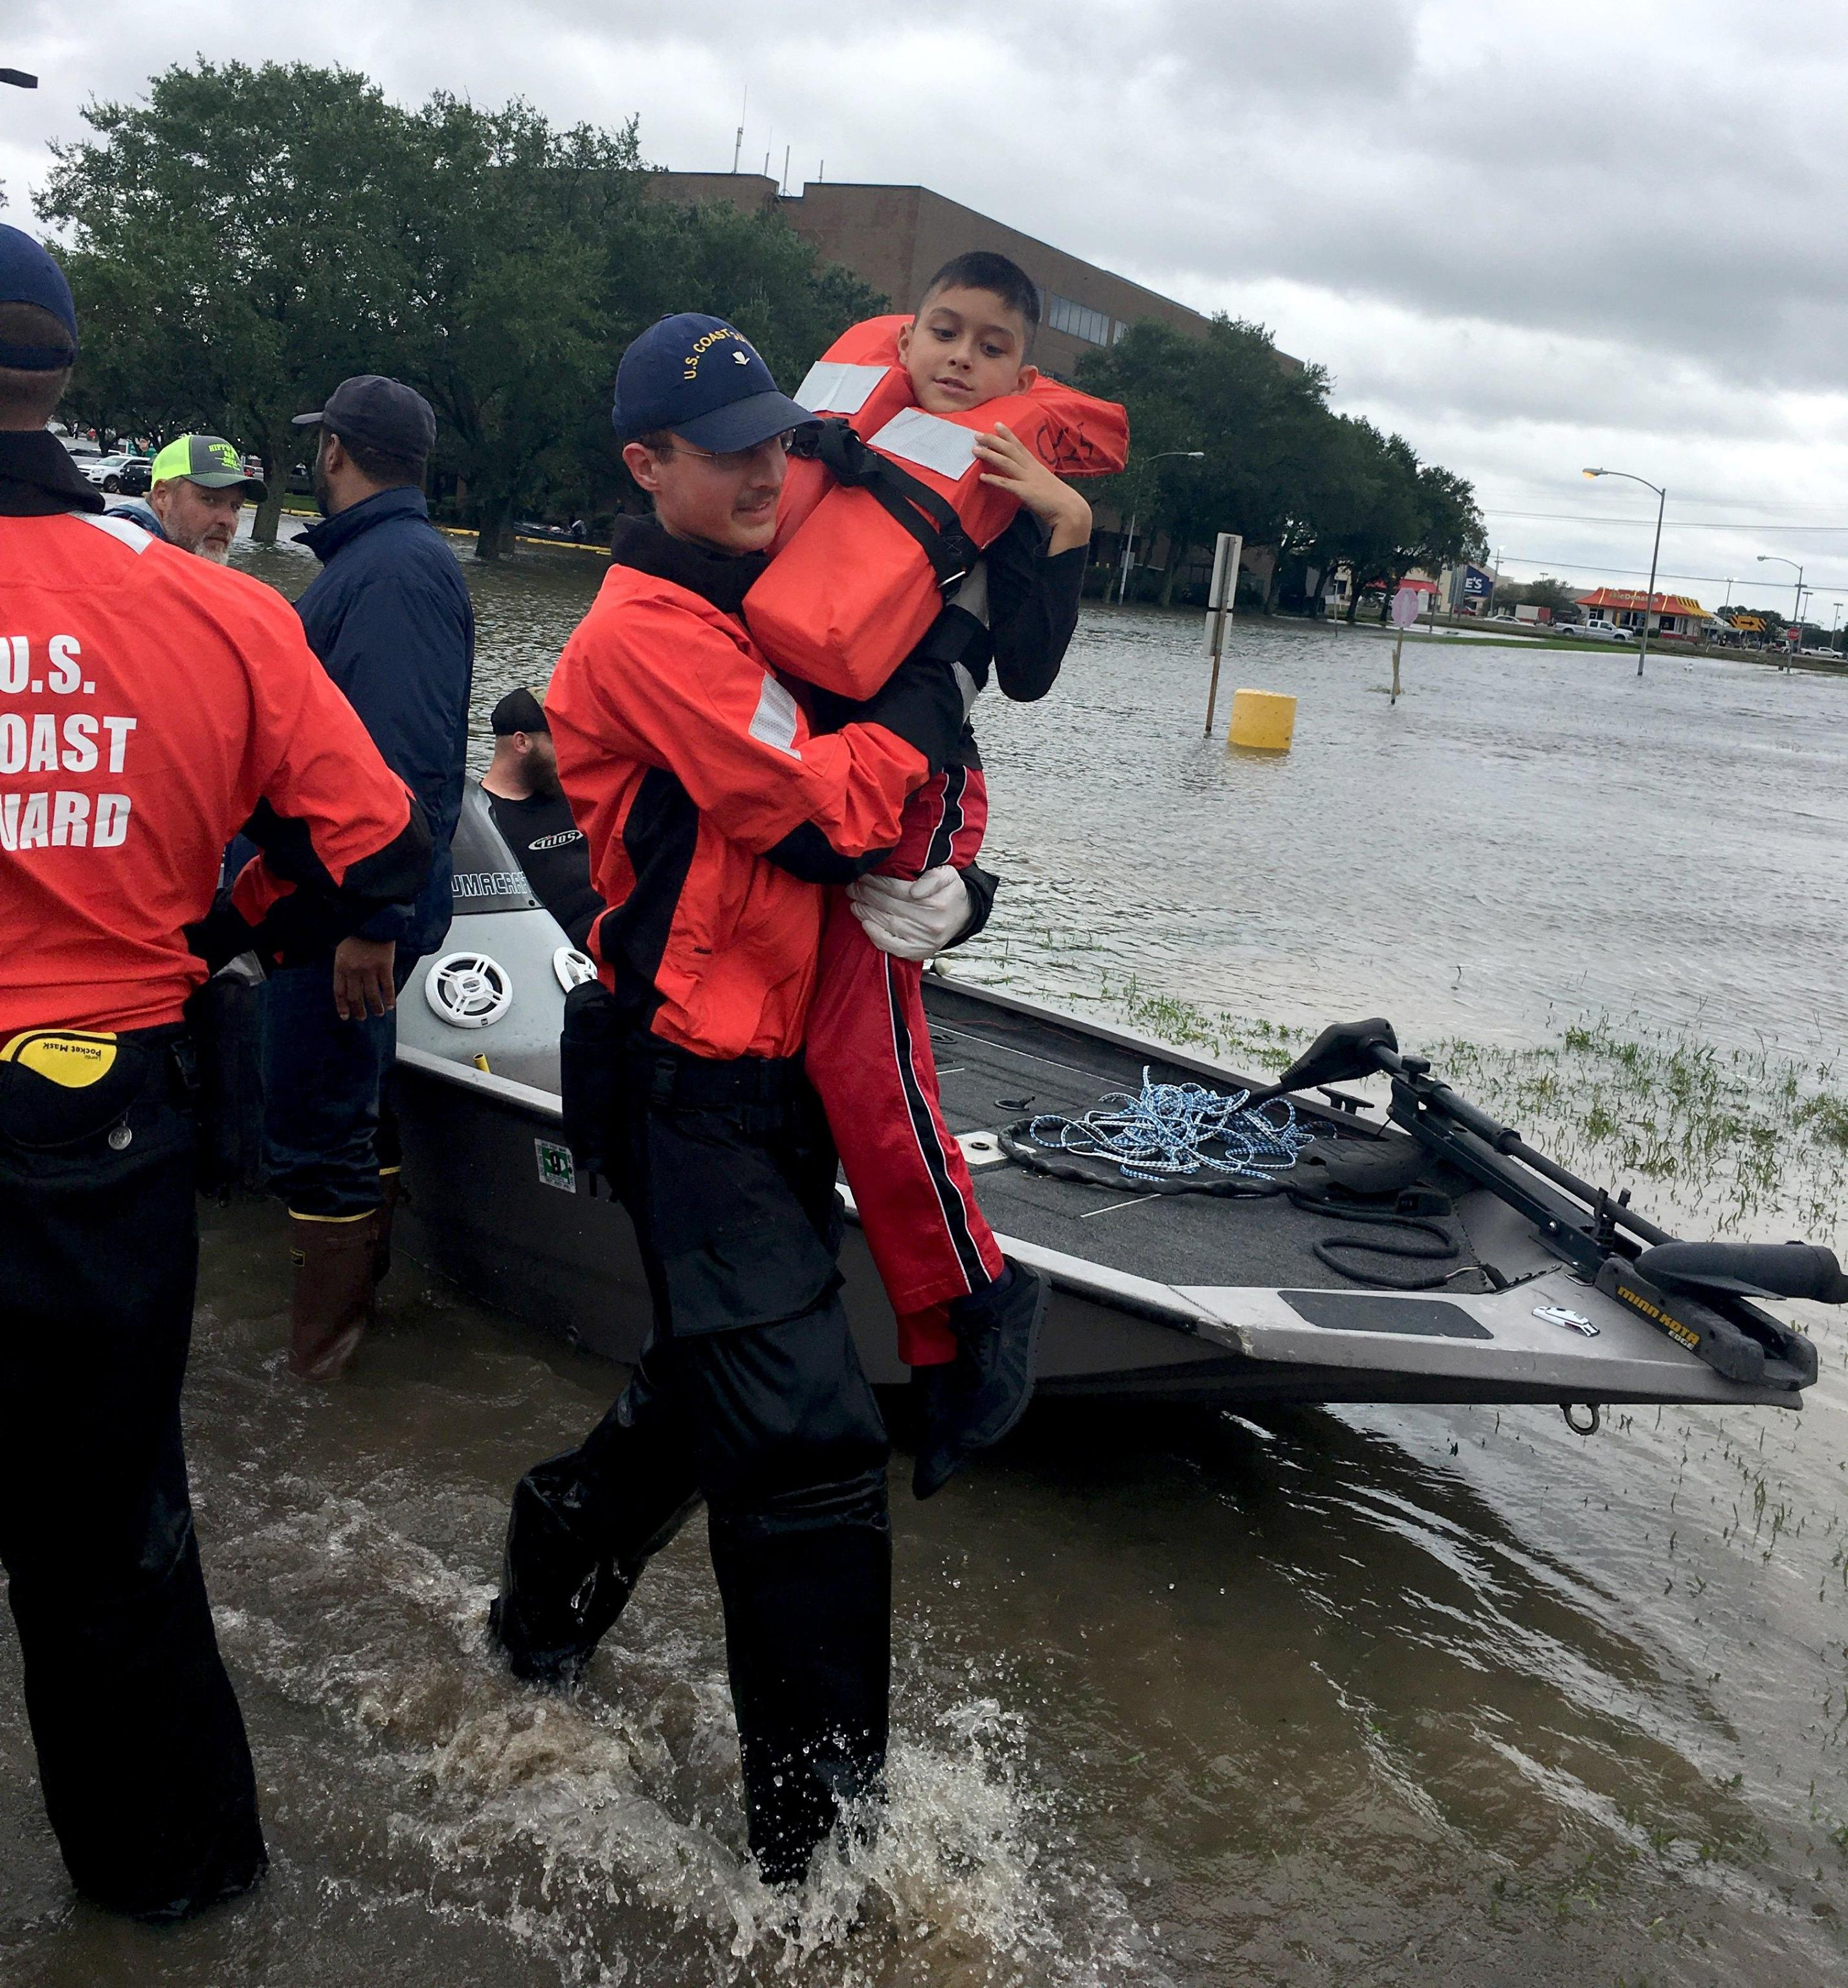 Coast Guard conducts search and rescue in response to Hurricane Harvey